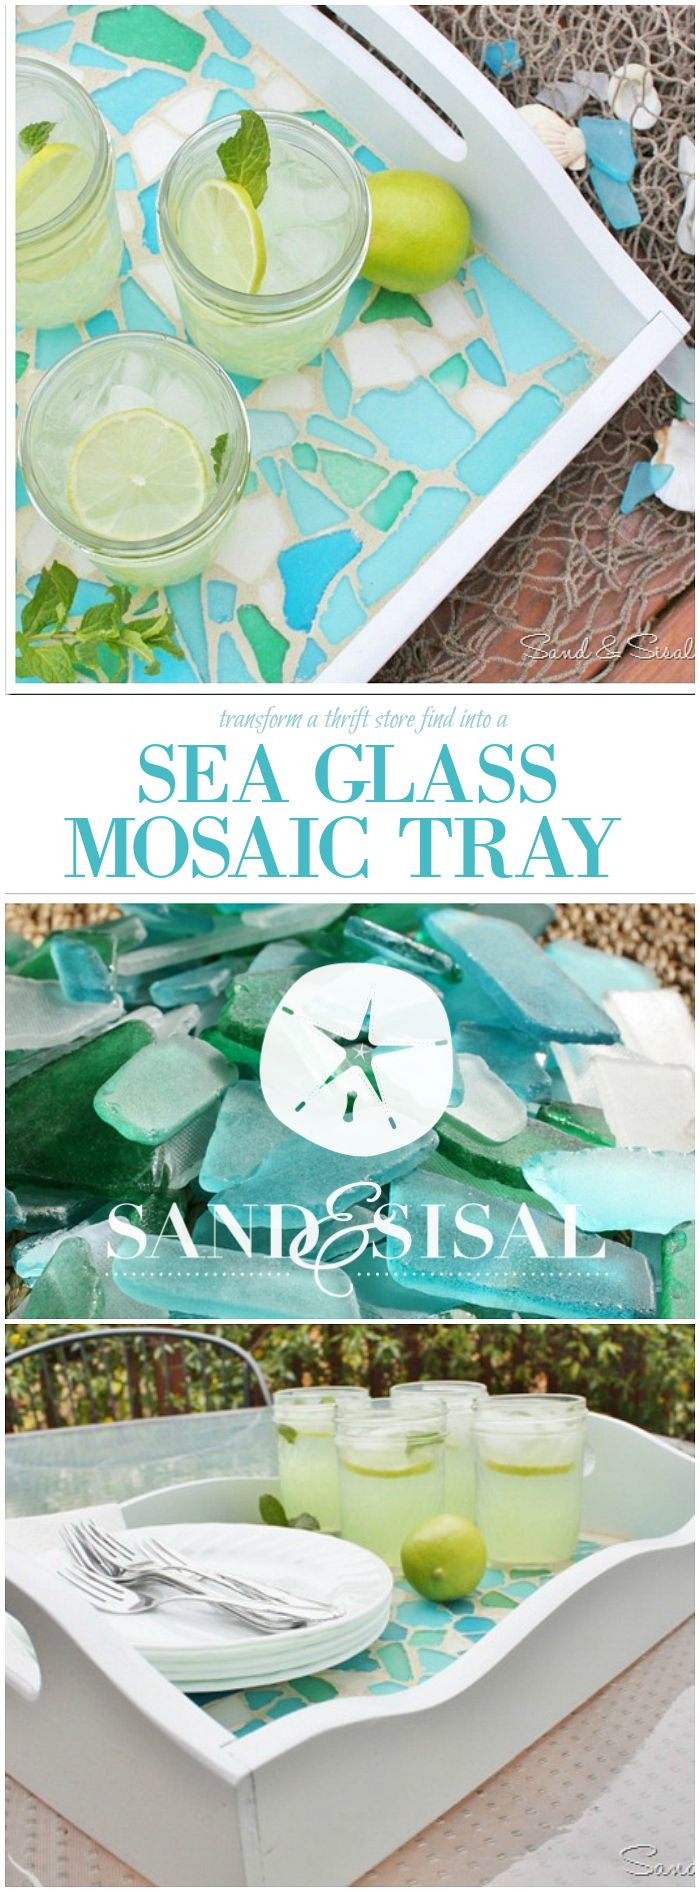 Sea Glass Mosaic Tray